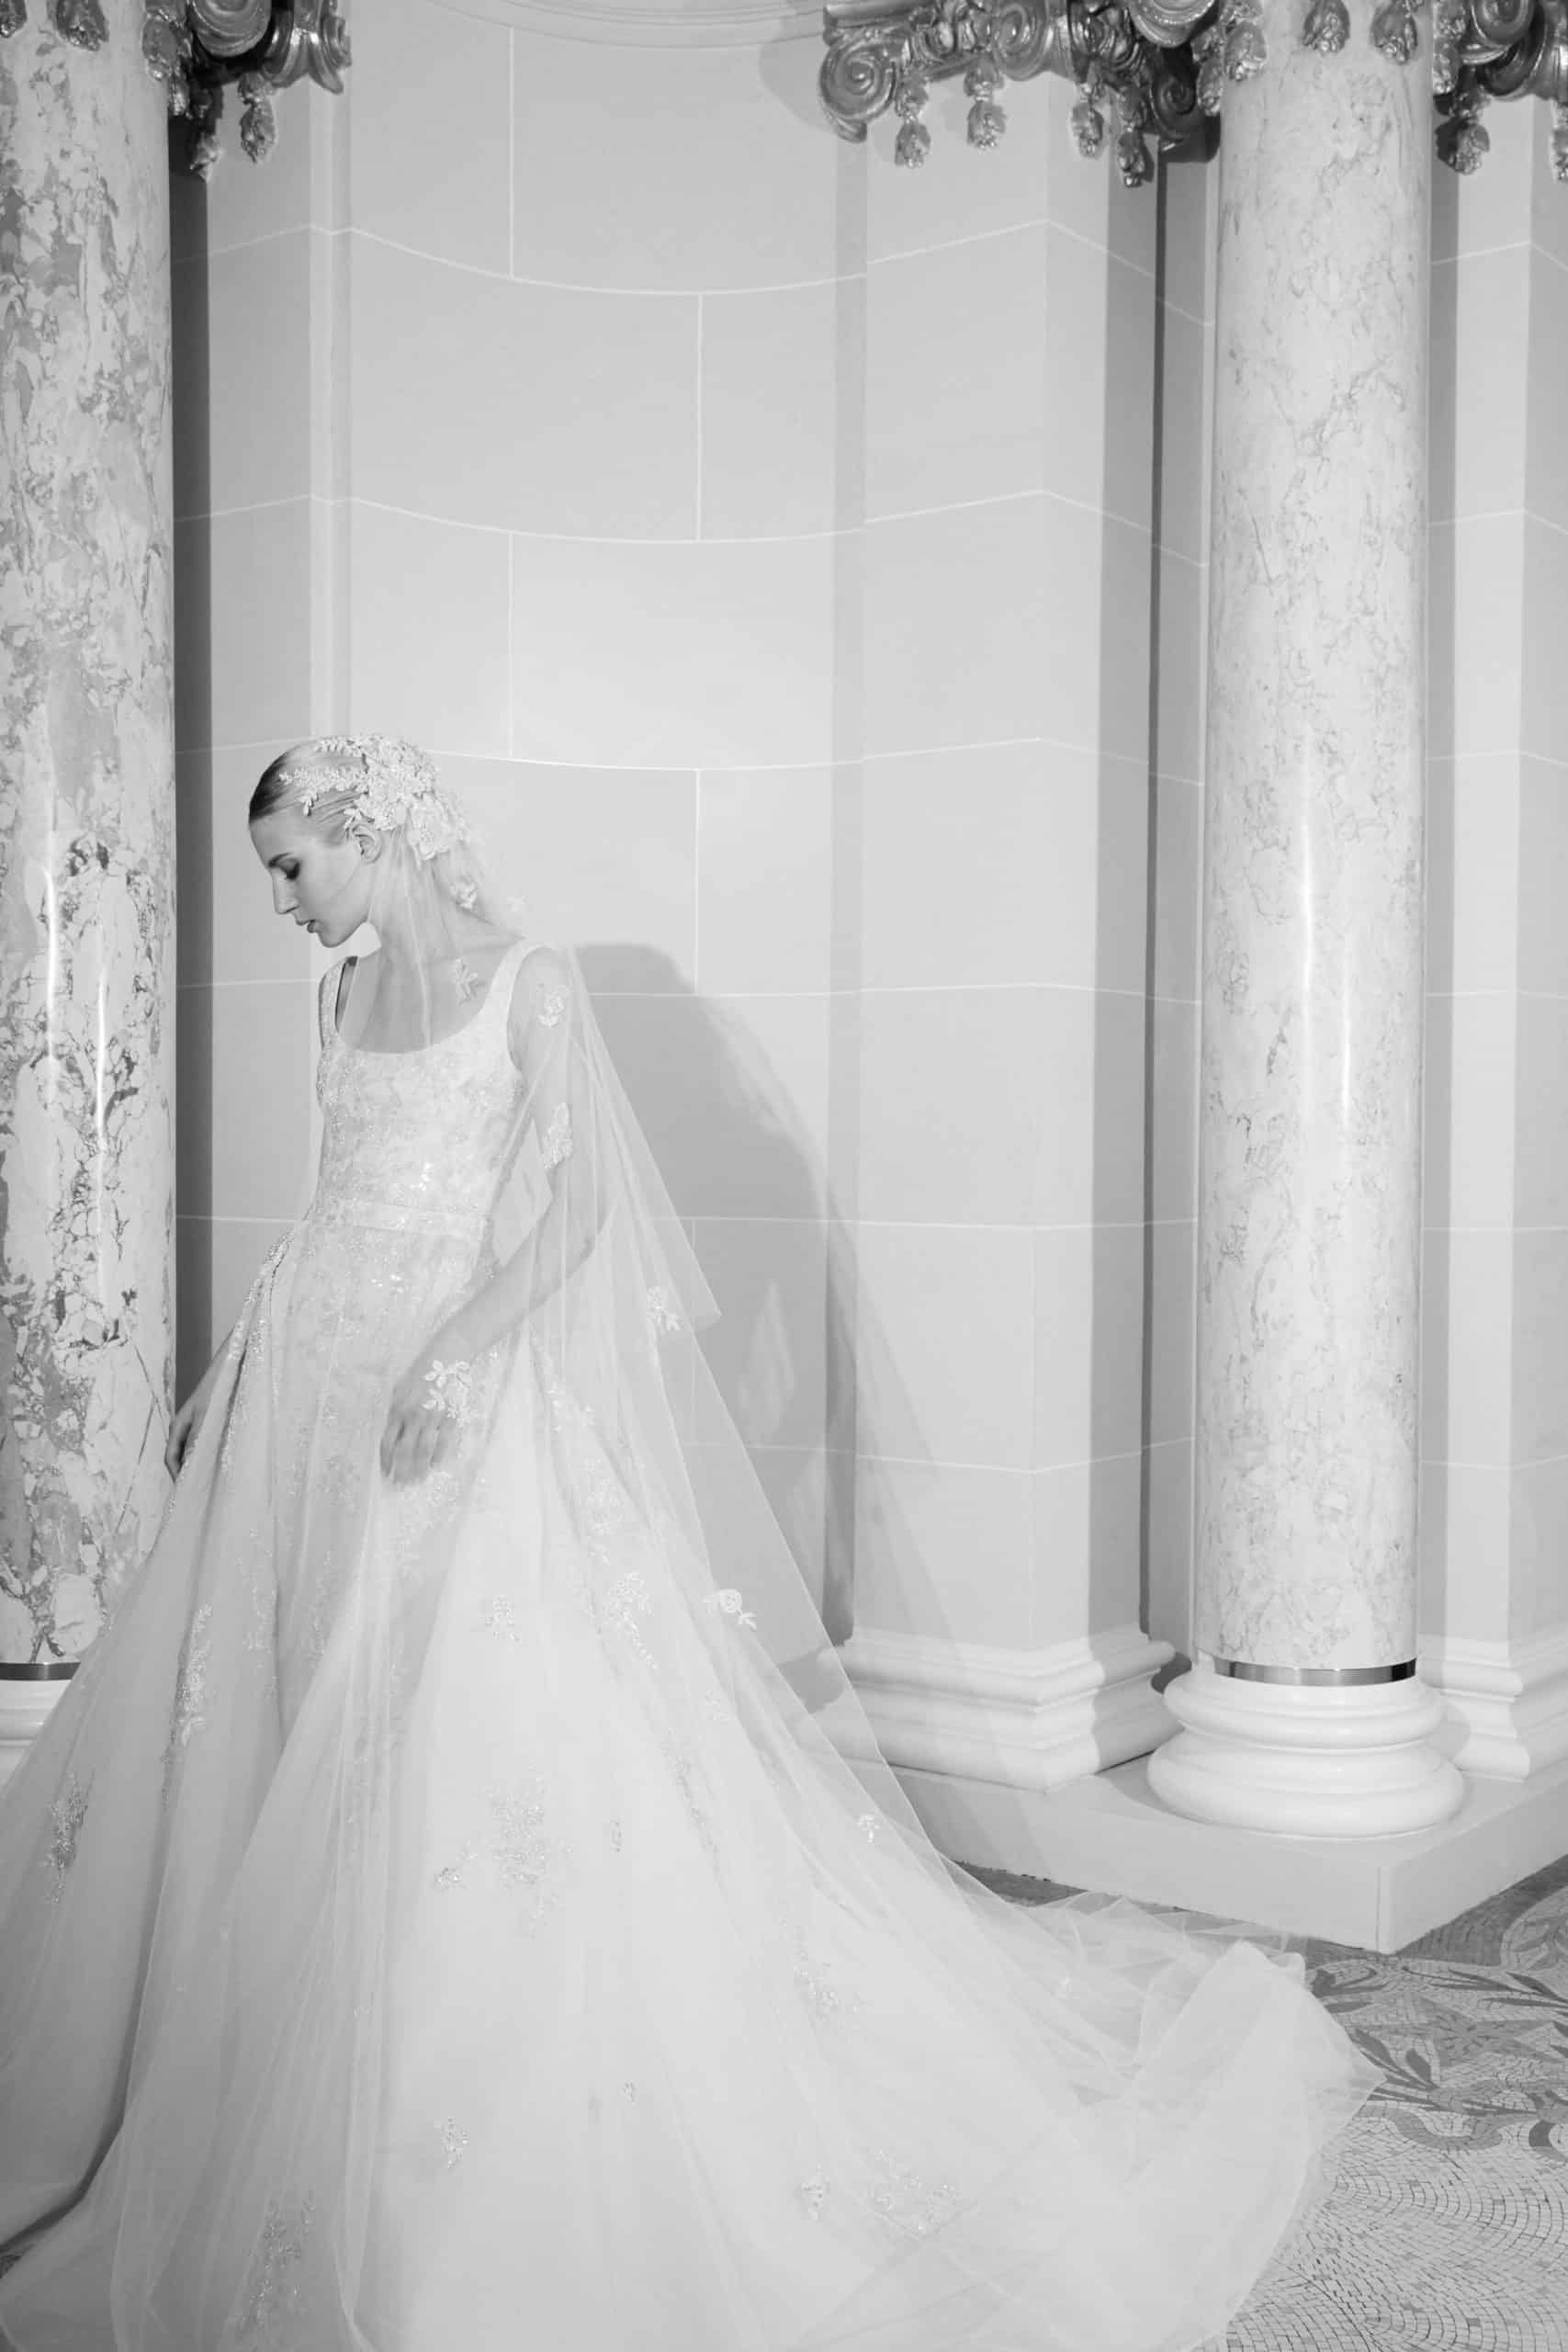 wedding dress a-lined with lace veil by Elie Saab